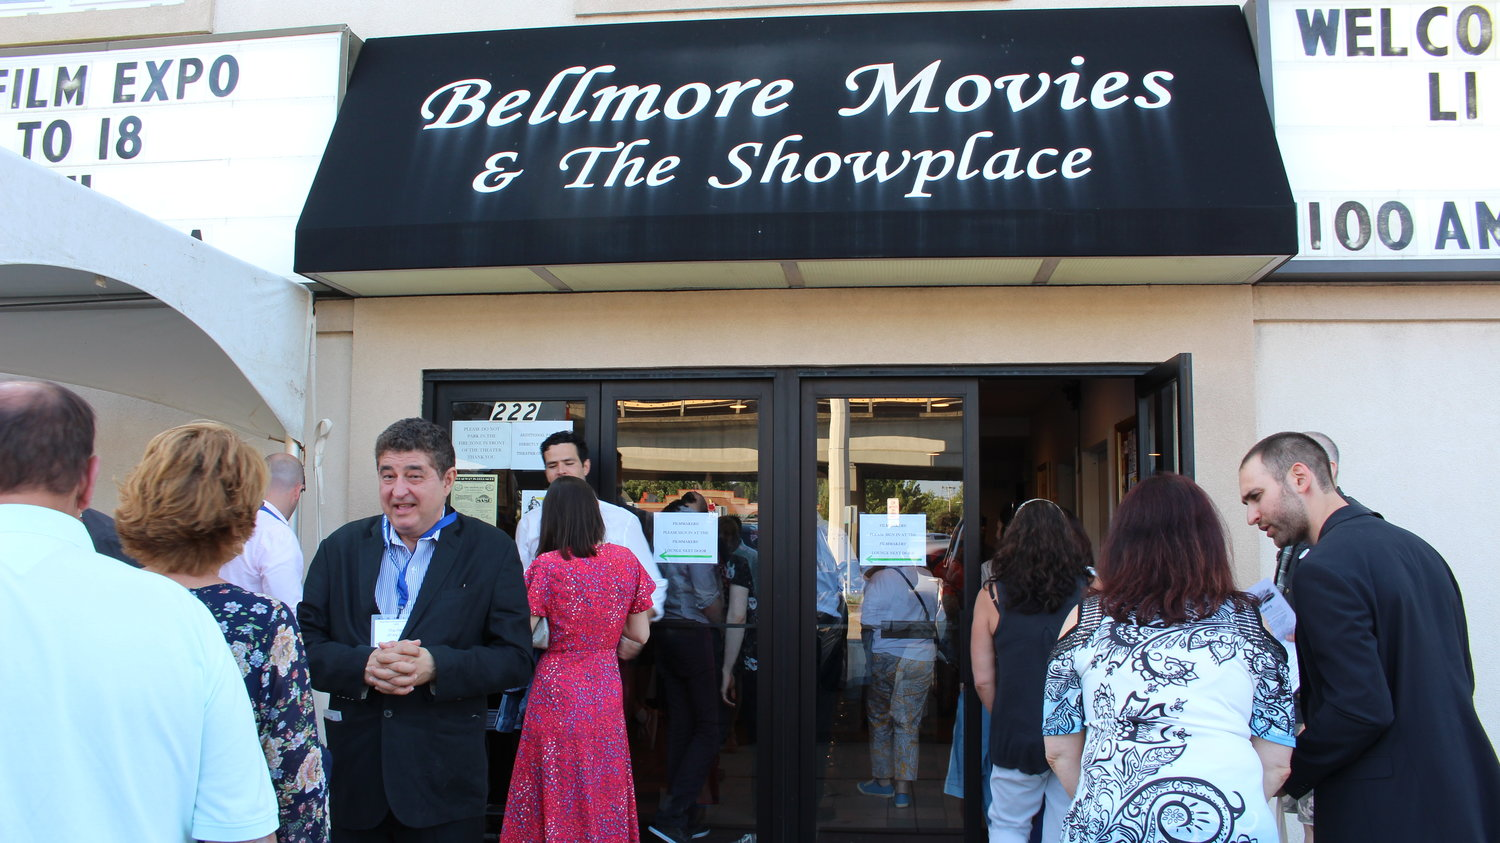 LIIFE brought filmmakers and moviegoers to the Bellmore Movies July 12-19.